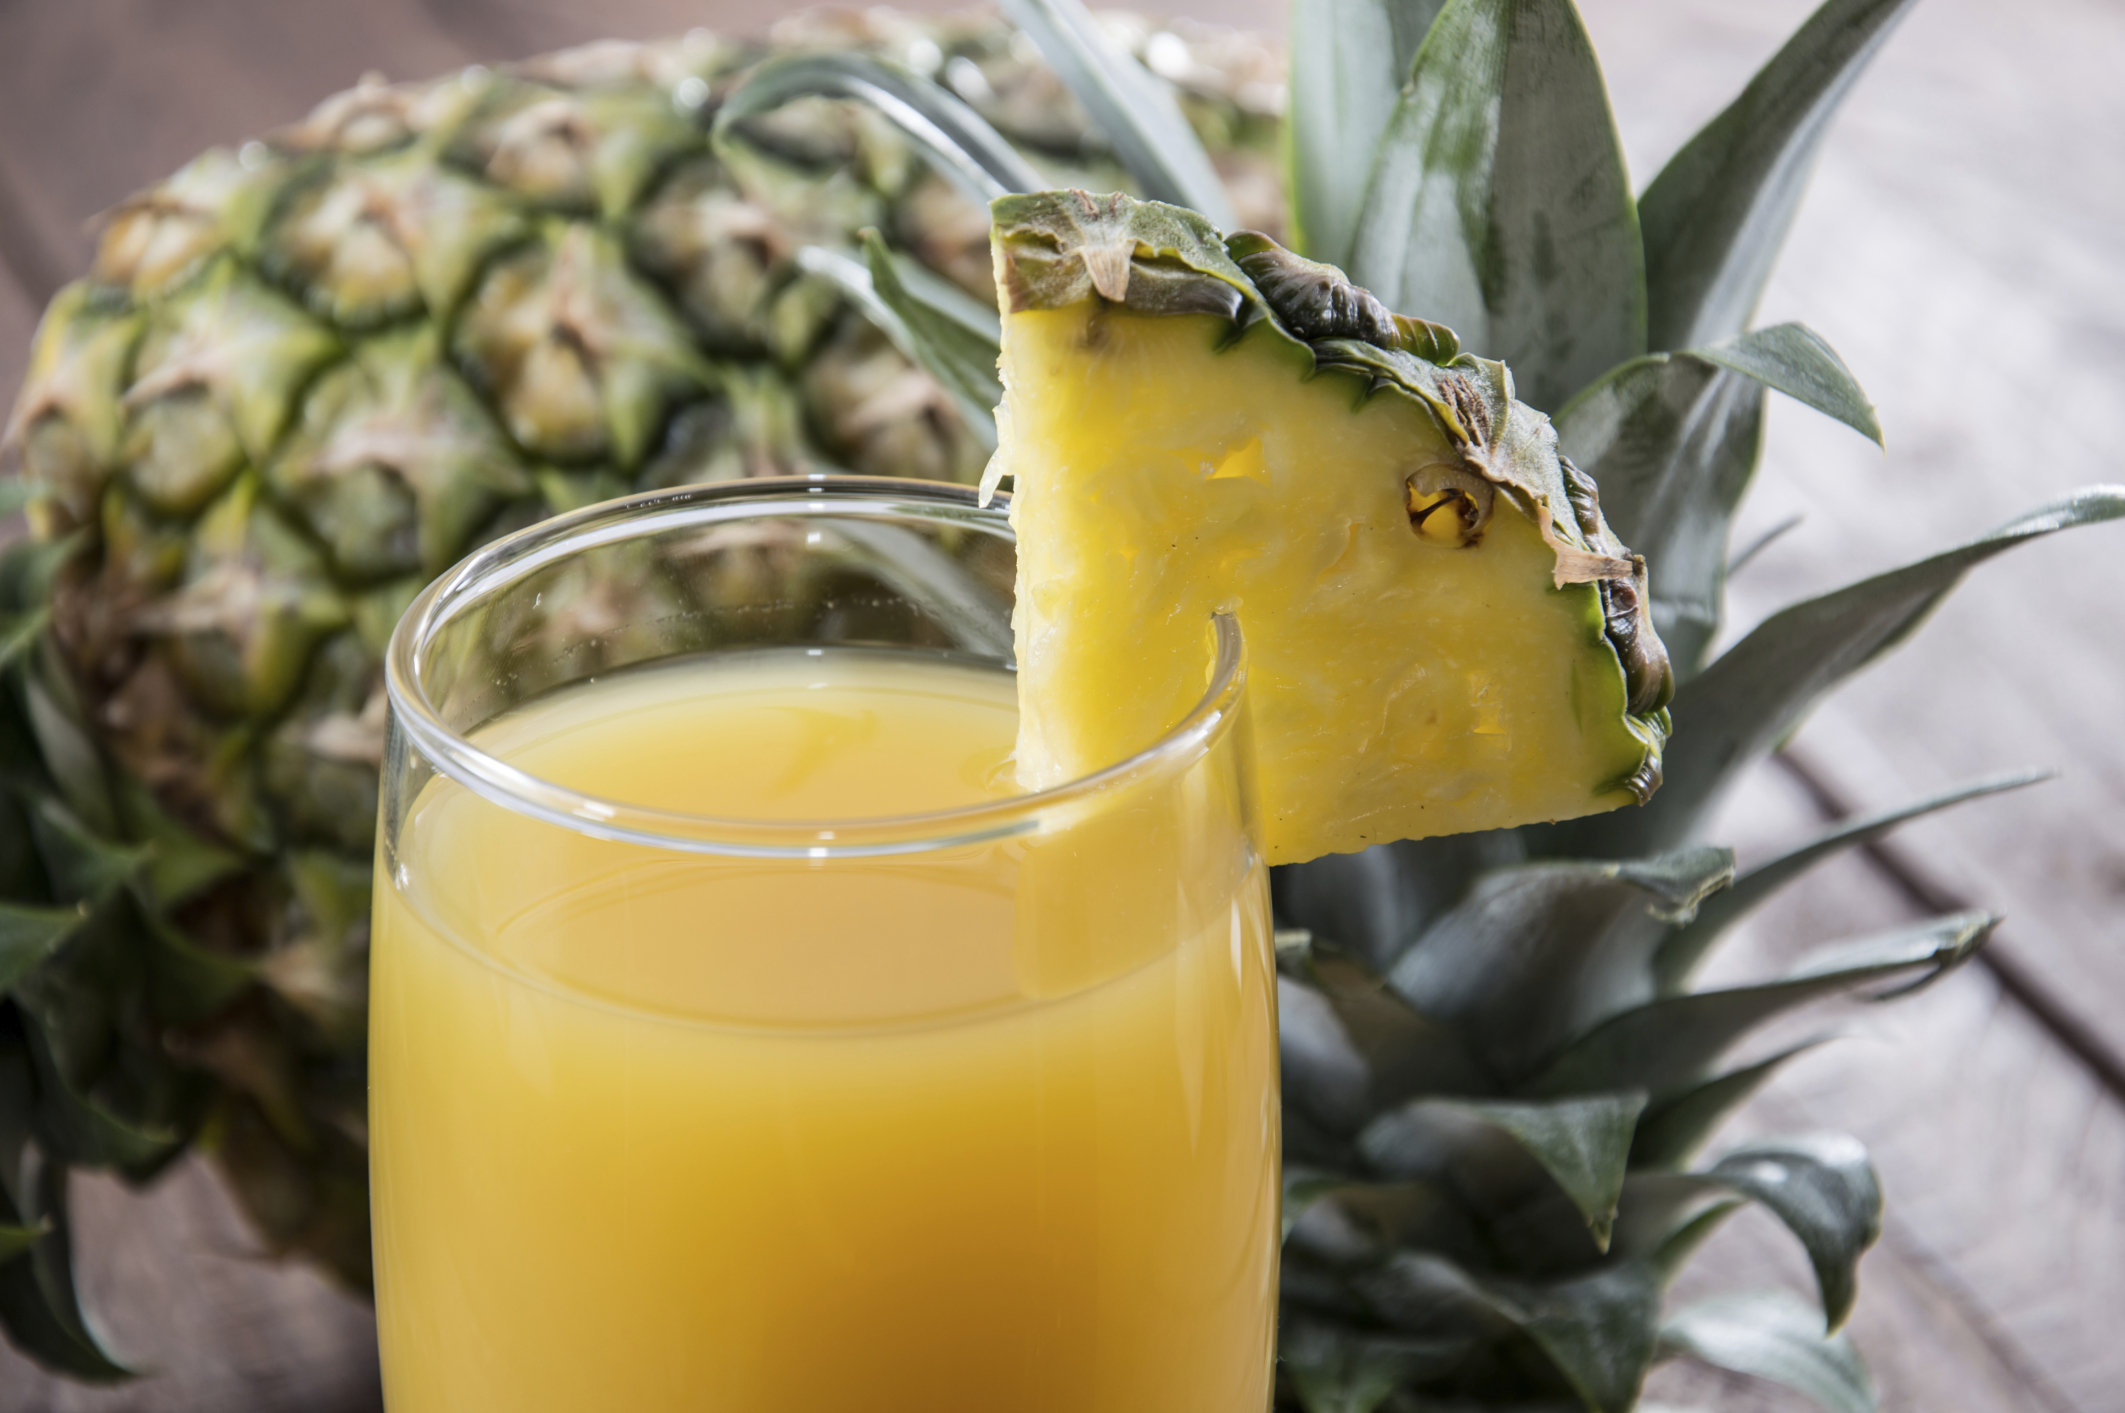 What Are the Benefits of Pineapple Juice for Women? | LIVESTRONG.COM